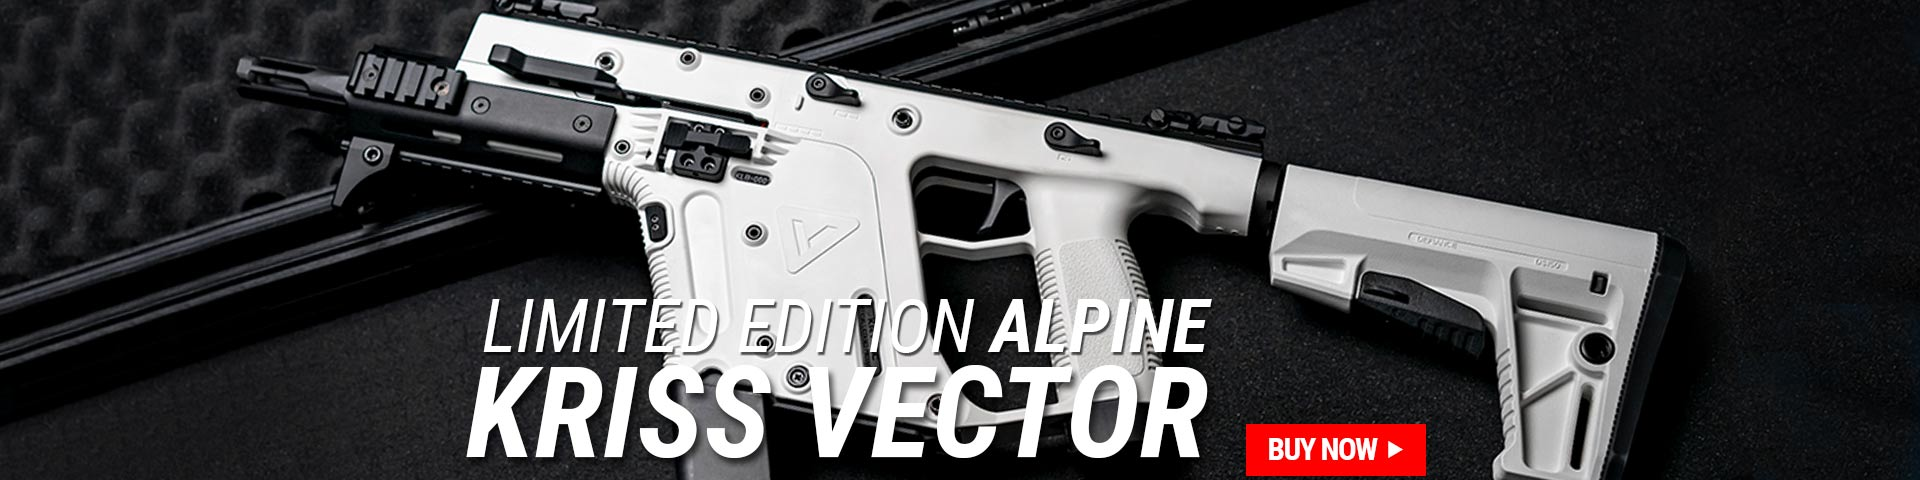 Featured: KRISS Vector